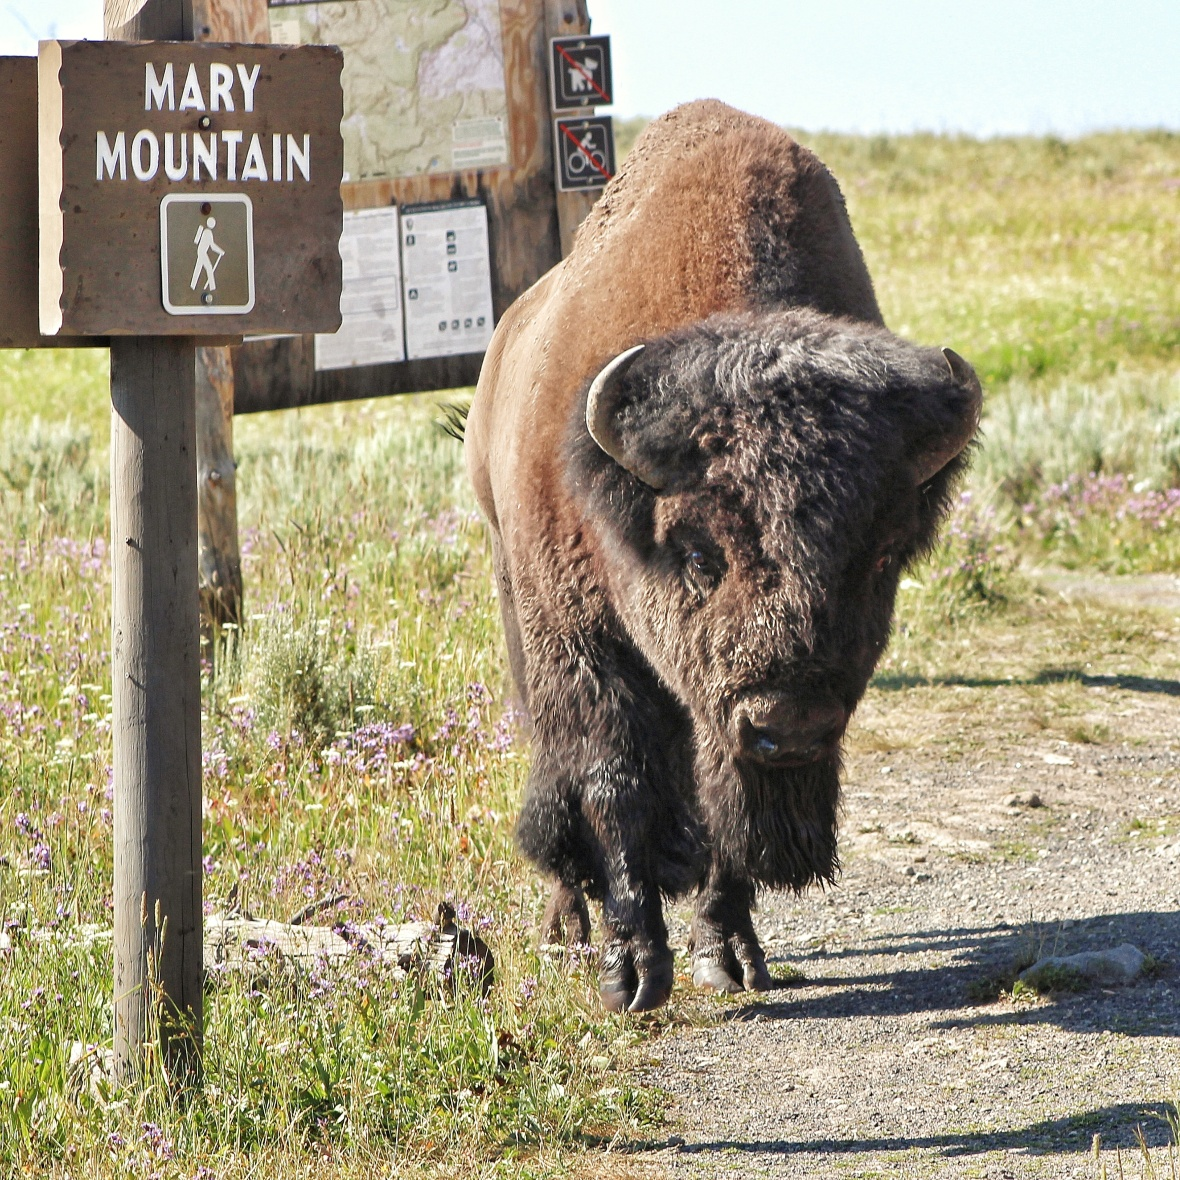 Bison strolling down the path